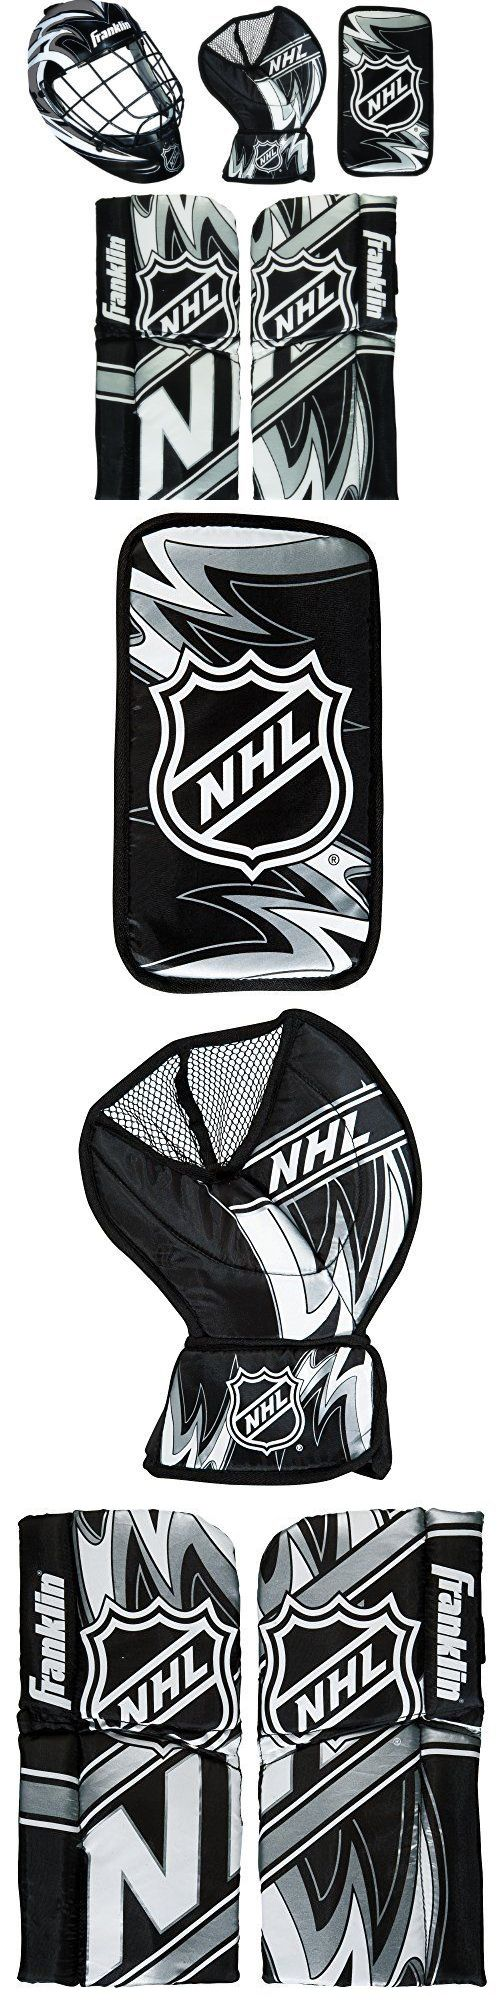 Other Hockey Goalie Equipment 79765: Franklin Sports Nhl Mini Hockey Goalie With Mask Set, New -> BUY IT NOW ONLY: $41.6 on eBay!